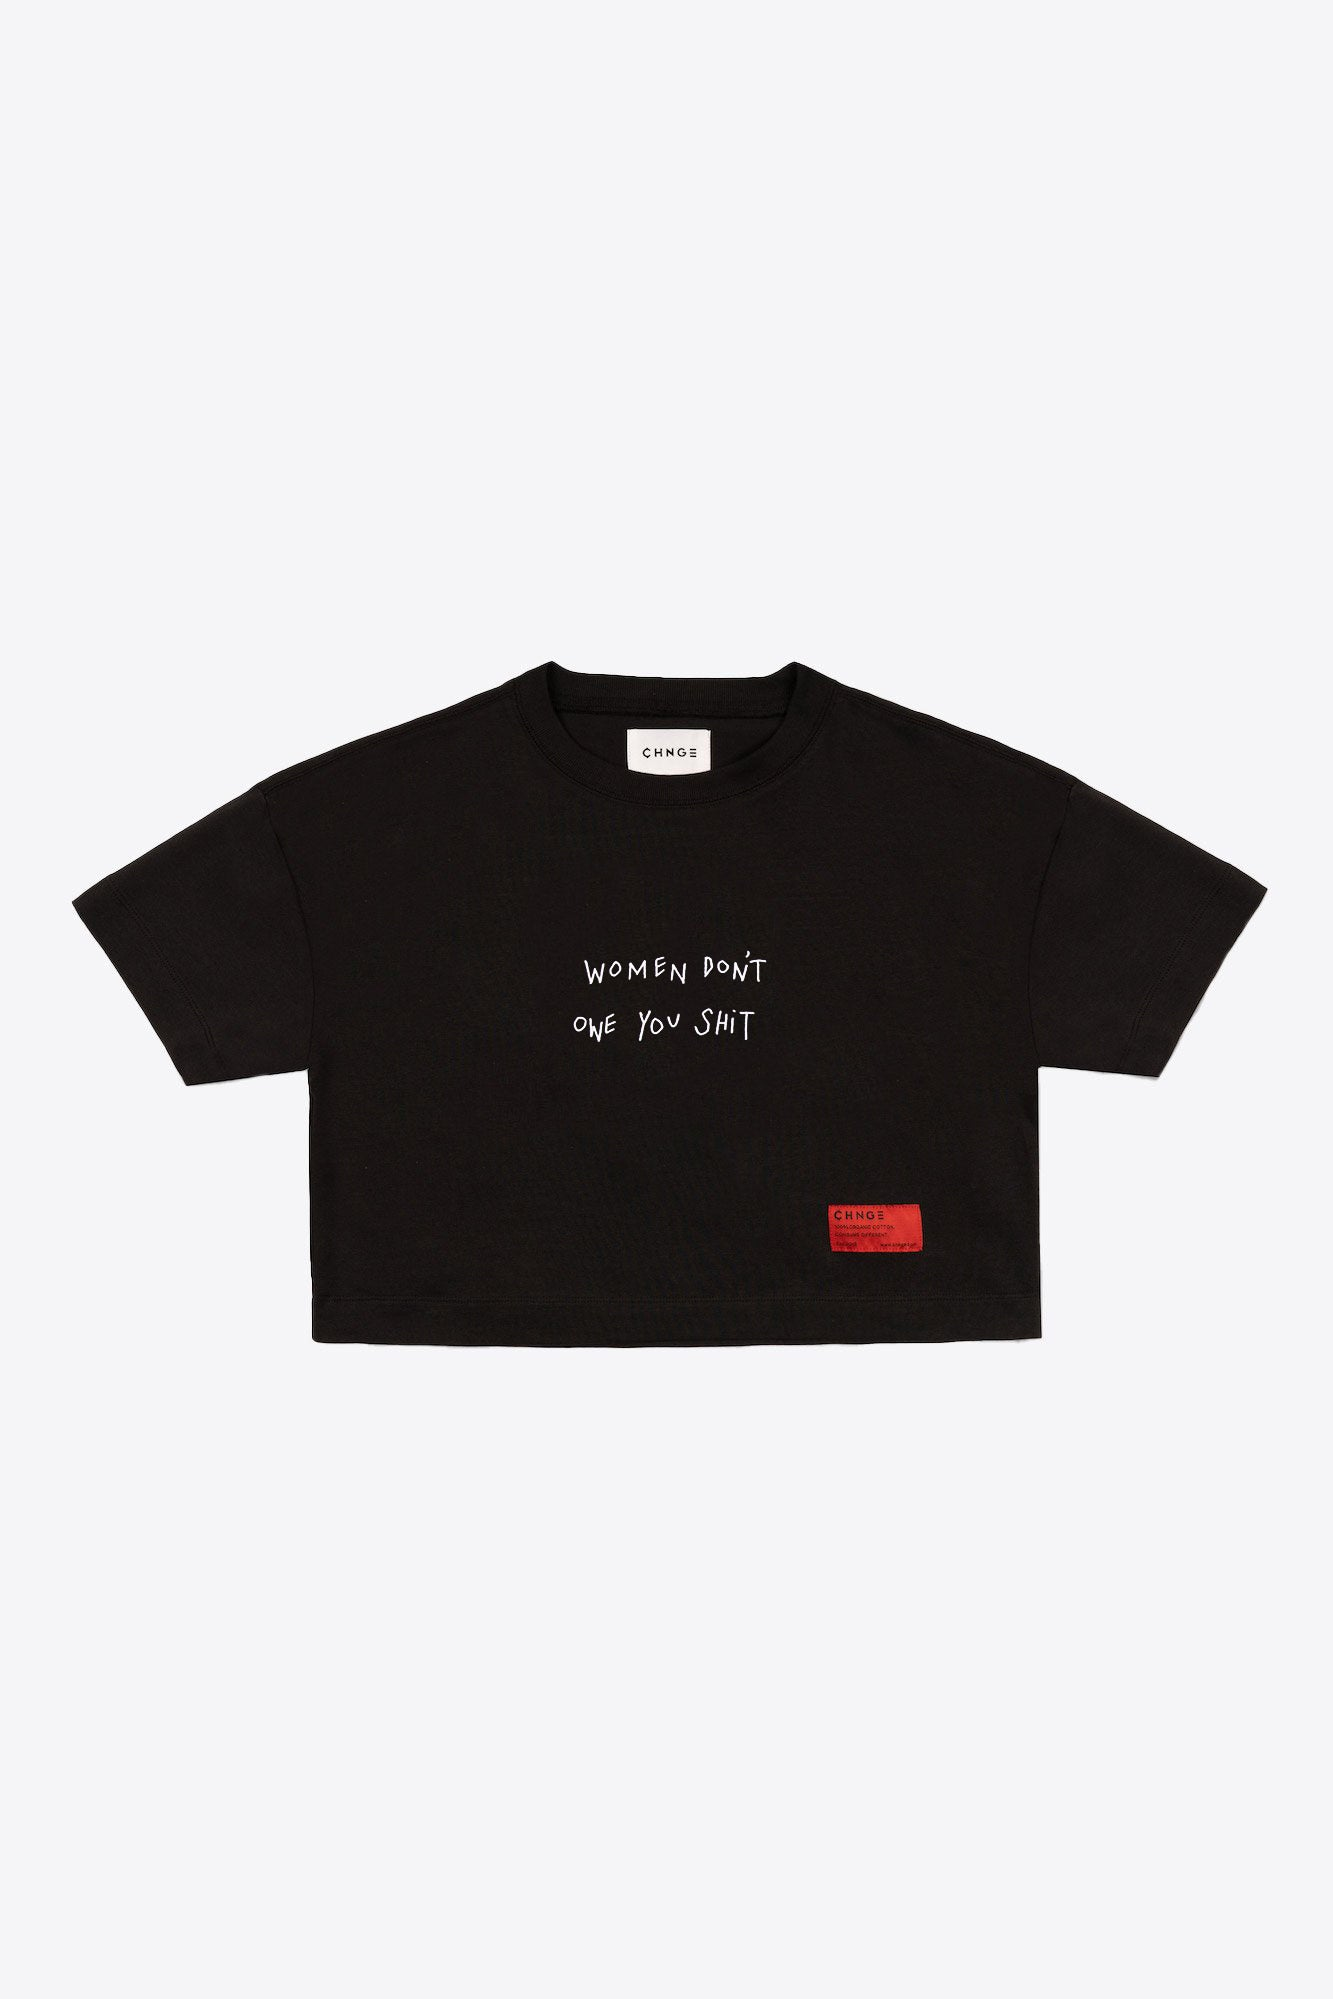 WDOYS Crop Top (Black)